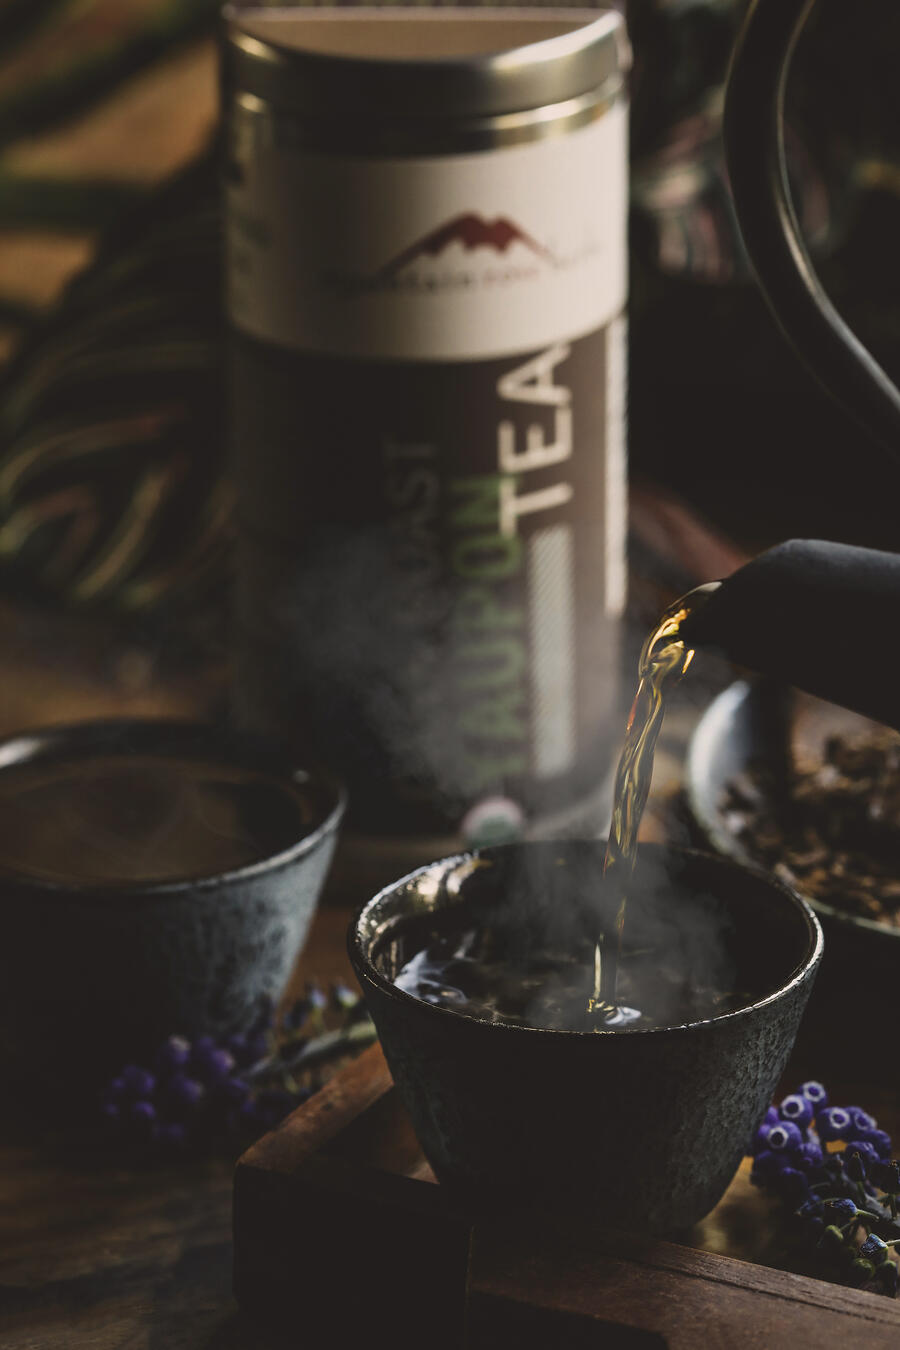 Hot yaupon tea being poured into a cup with steam rising.